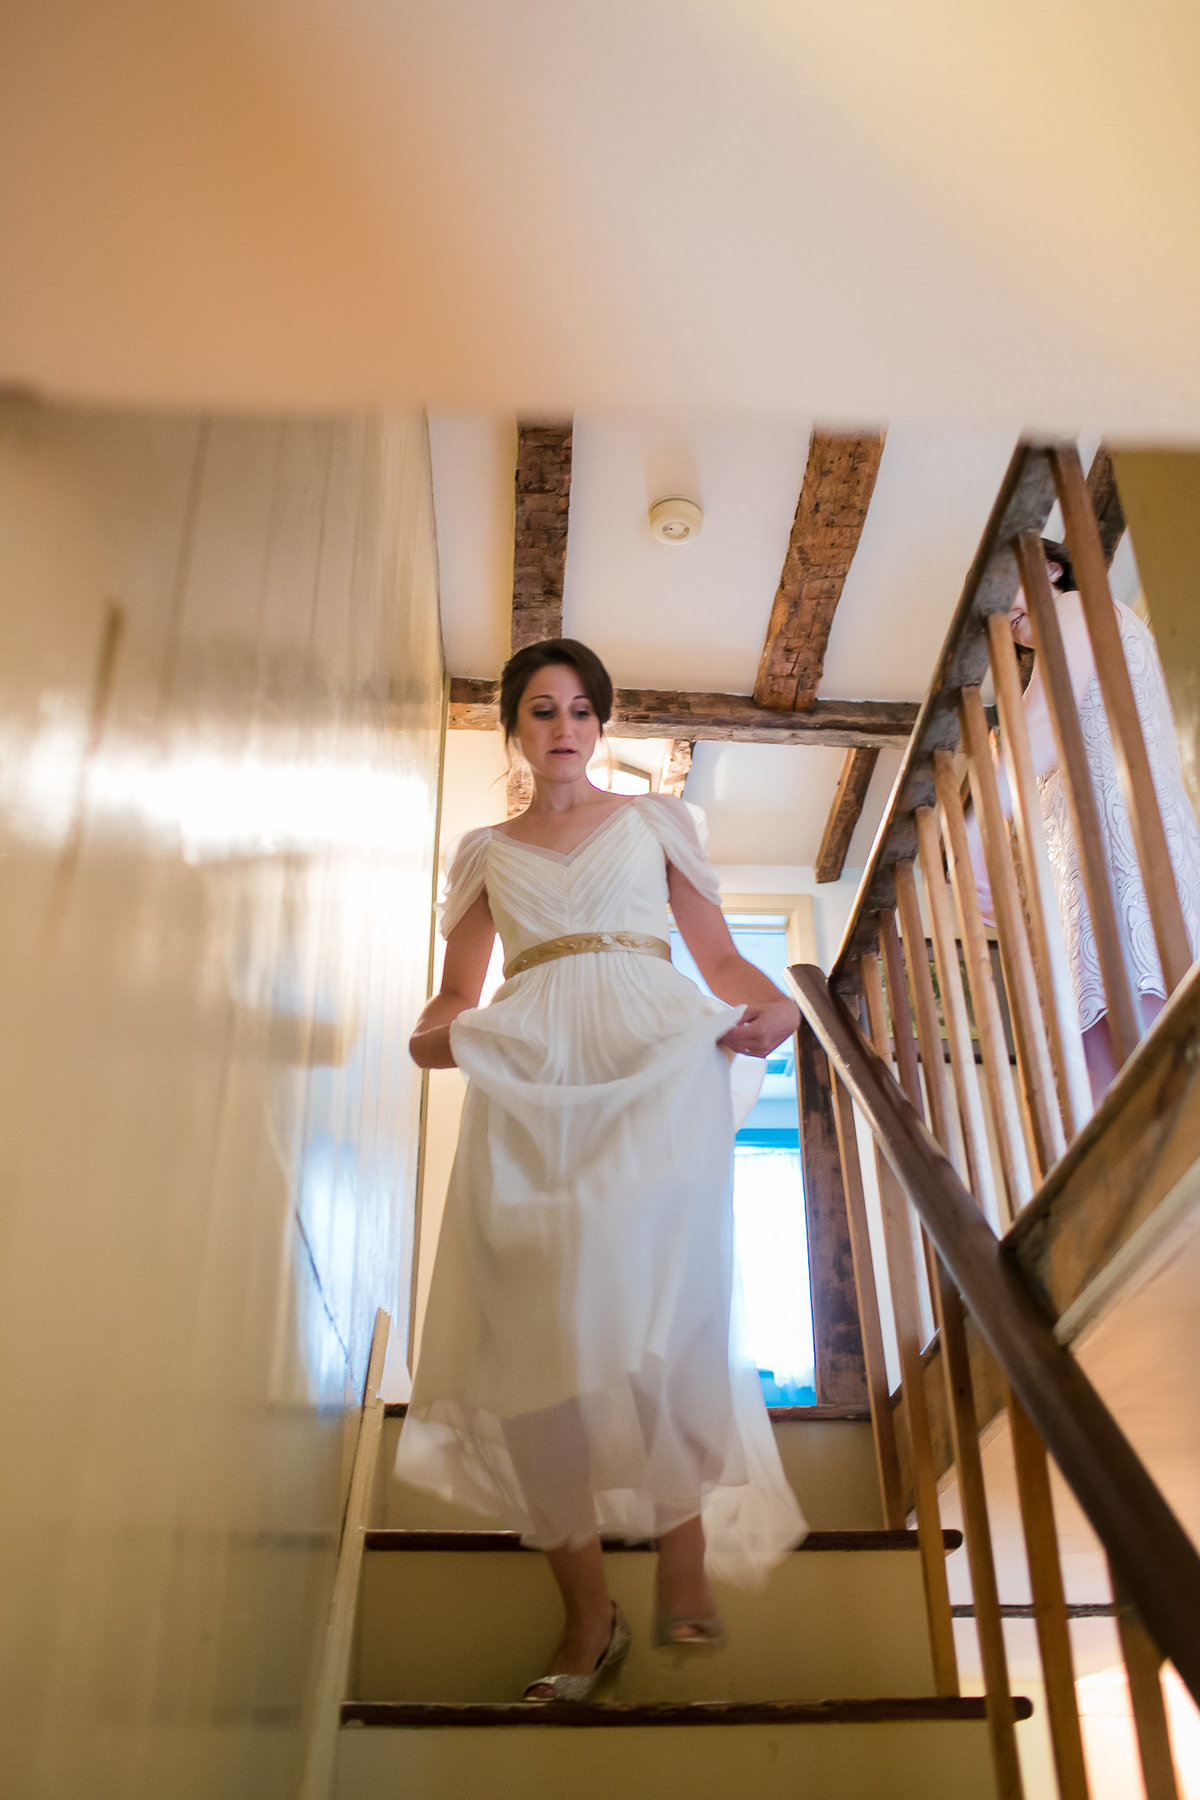 Brooklyn Wedding Photographer | Rob Allen Photography | Destination Wedding Photographer at Mt. Sinai New York  bride alking down the stairs after getting ready